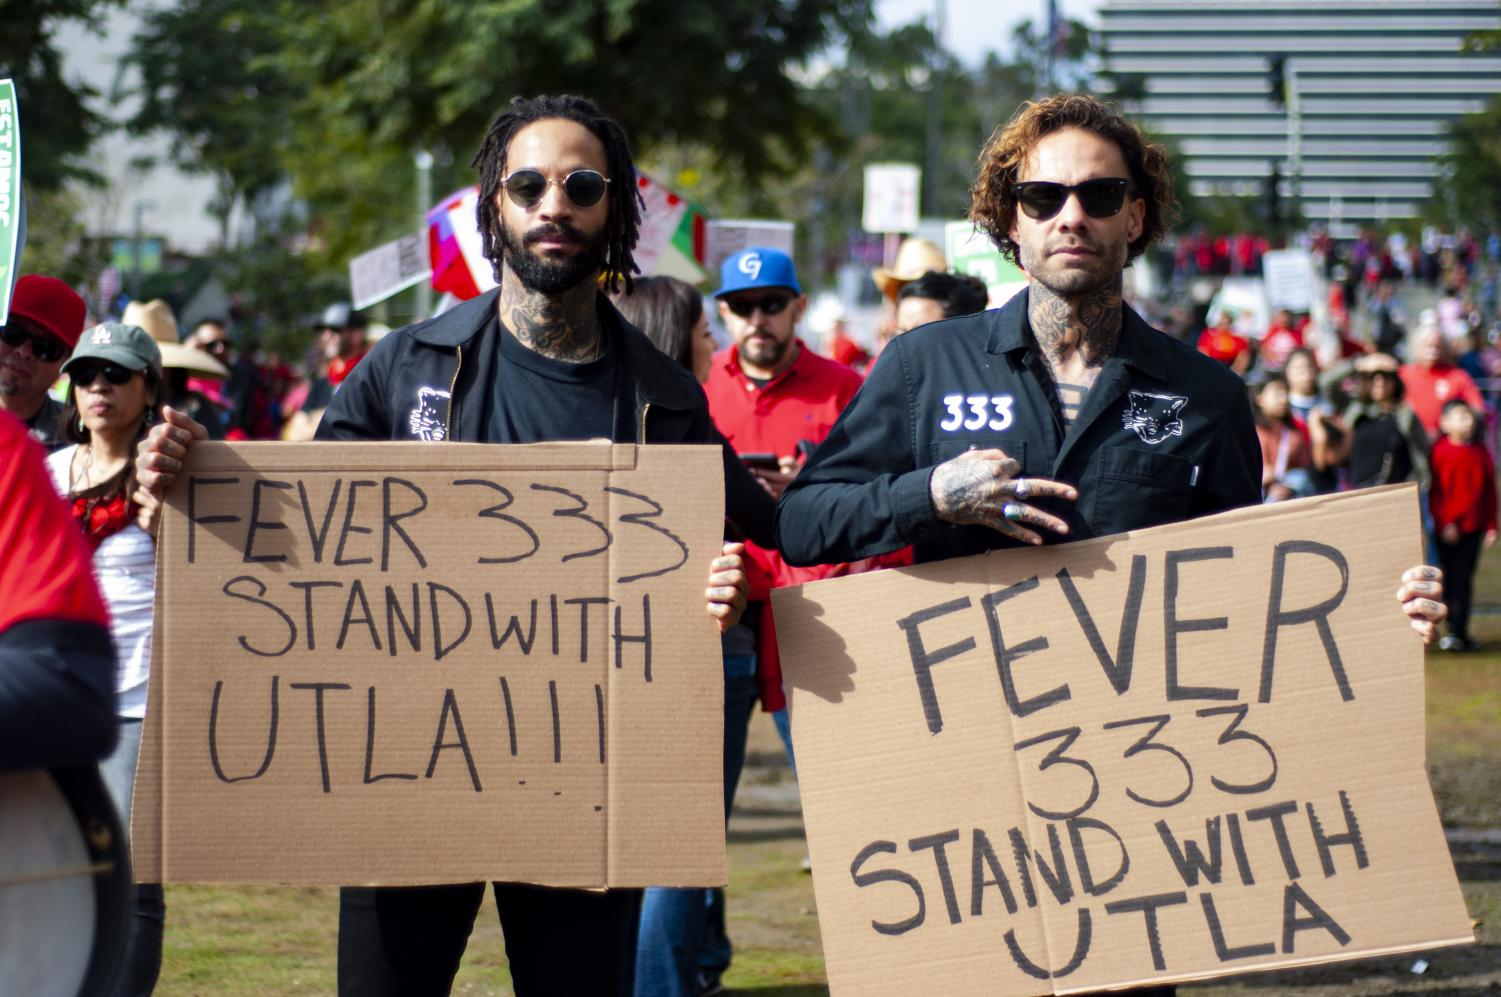 The Fever33 celebrate the drop of their first album, Strength in Numb33rs, by attending the DTLA teachers march on Friday, January 18.